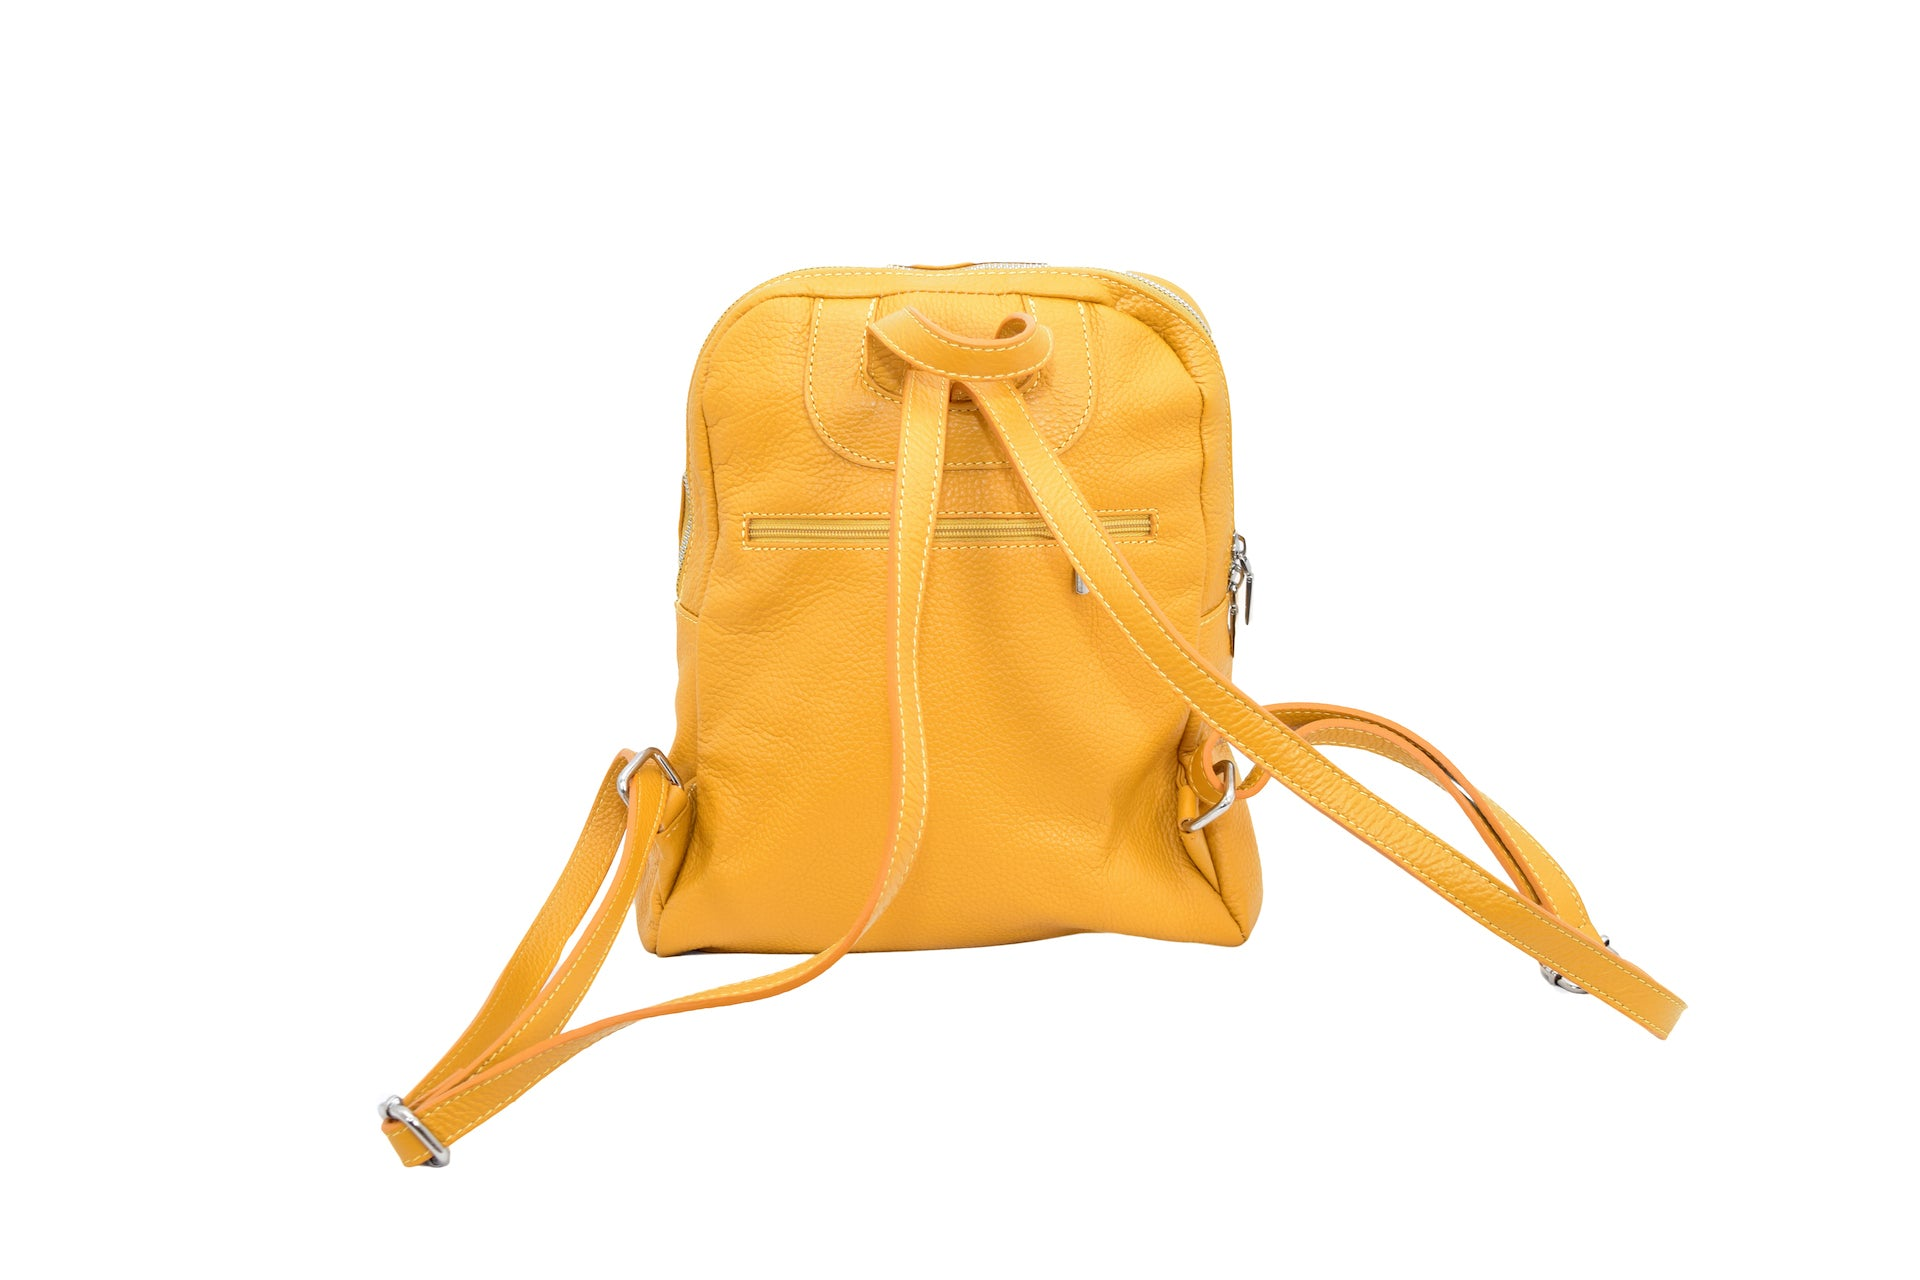 Yellow leather backpack with three external compartments and silver hardware